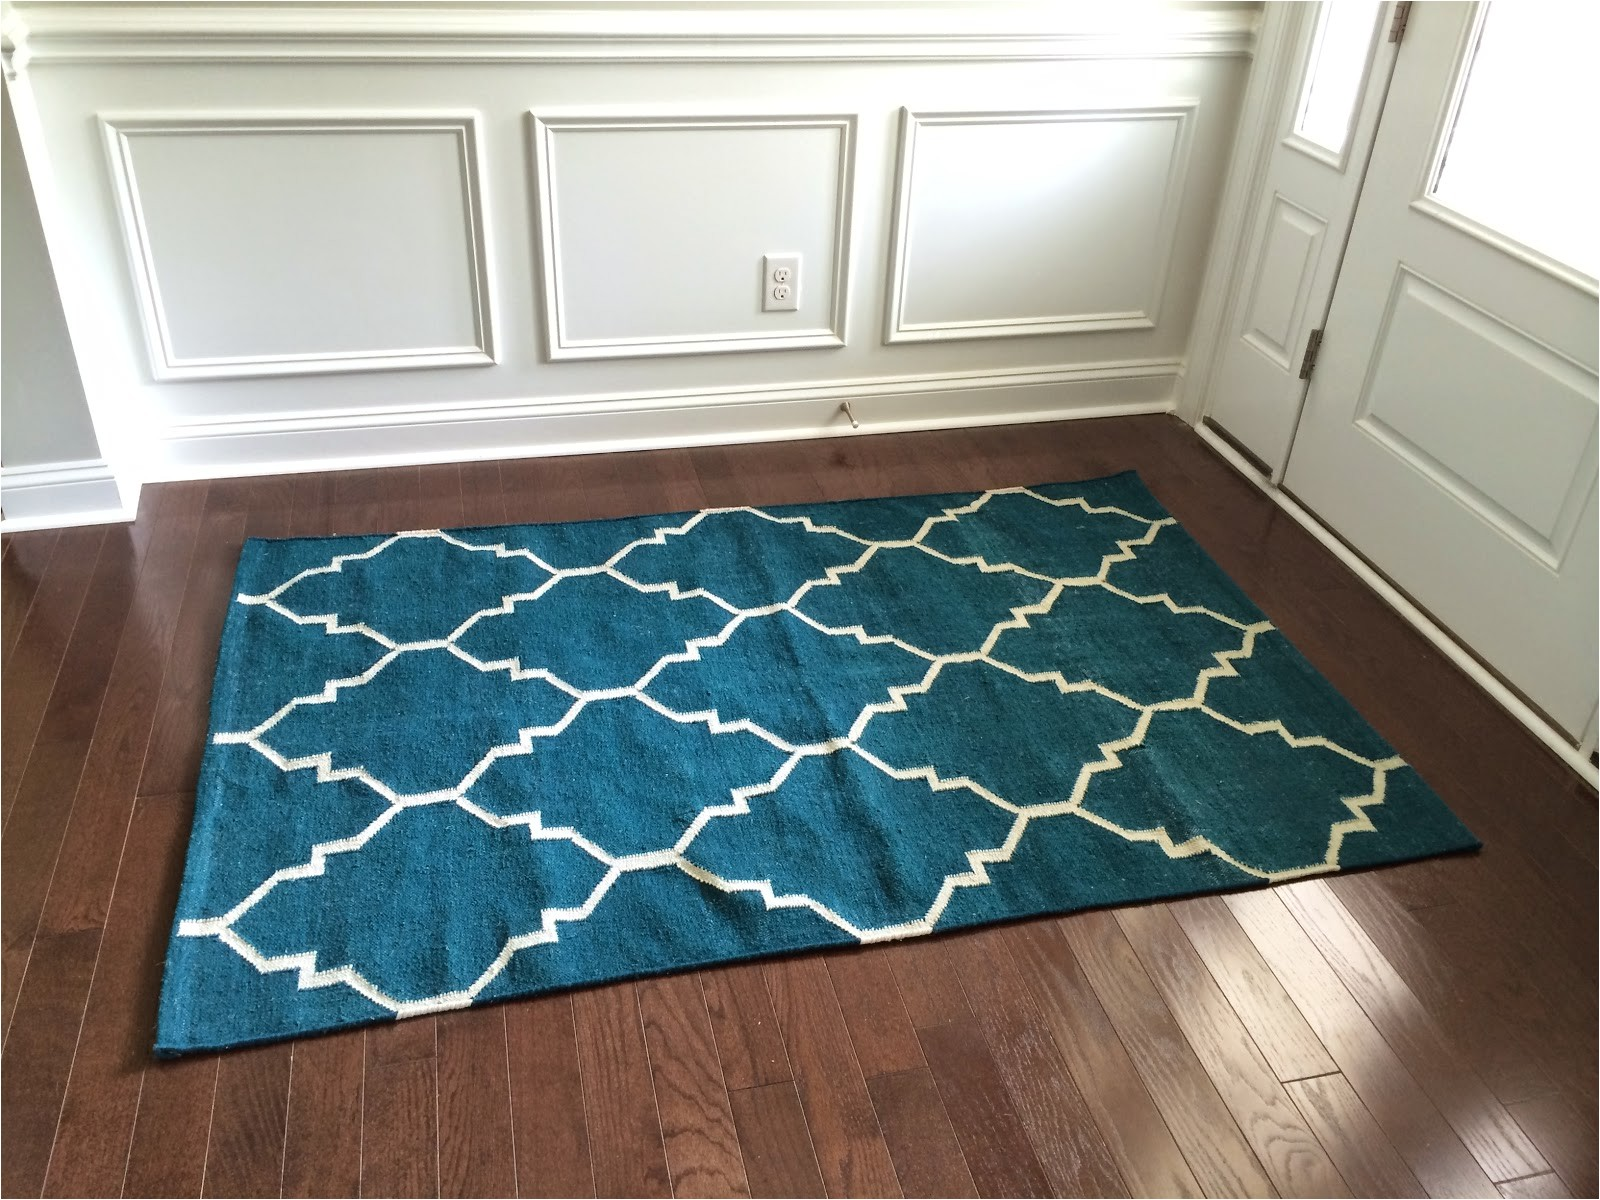 terrific home goods rug artisan de luxe home rug wooden floor white wall rug white and blue motif